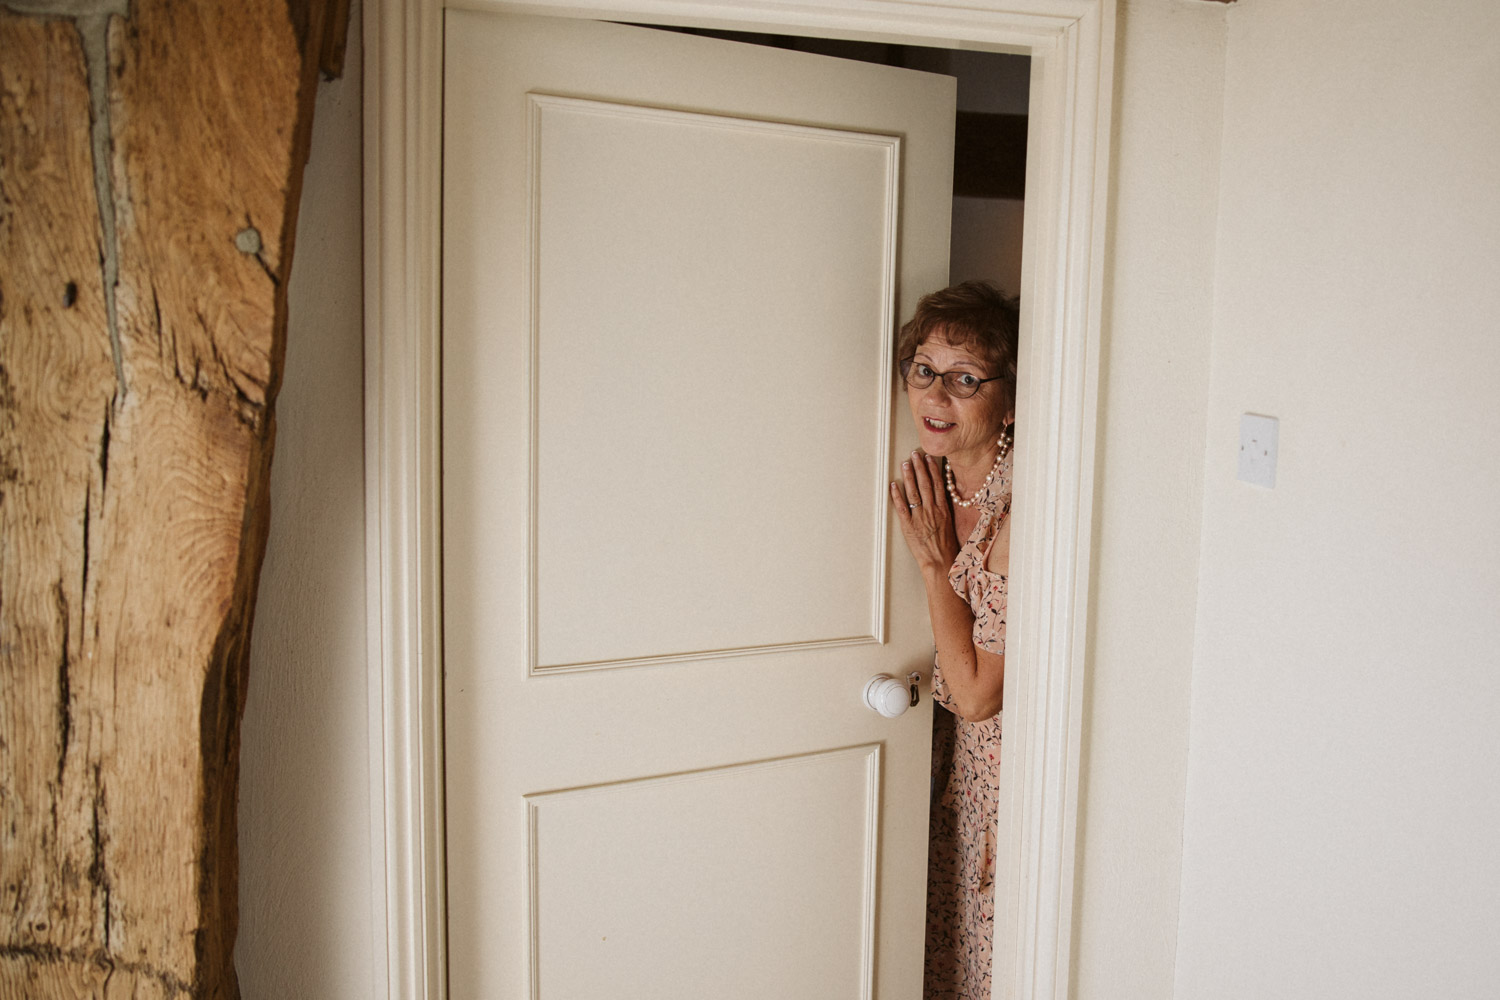 the mother of the bride opening the door to her preparation room